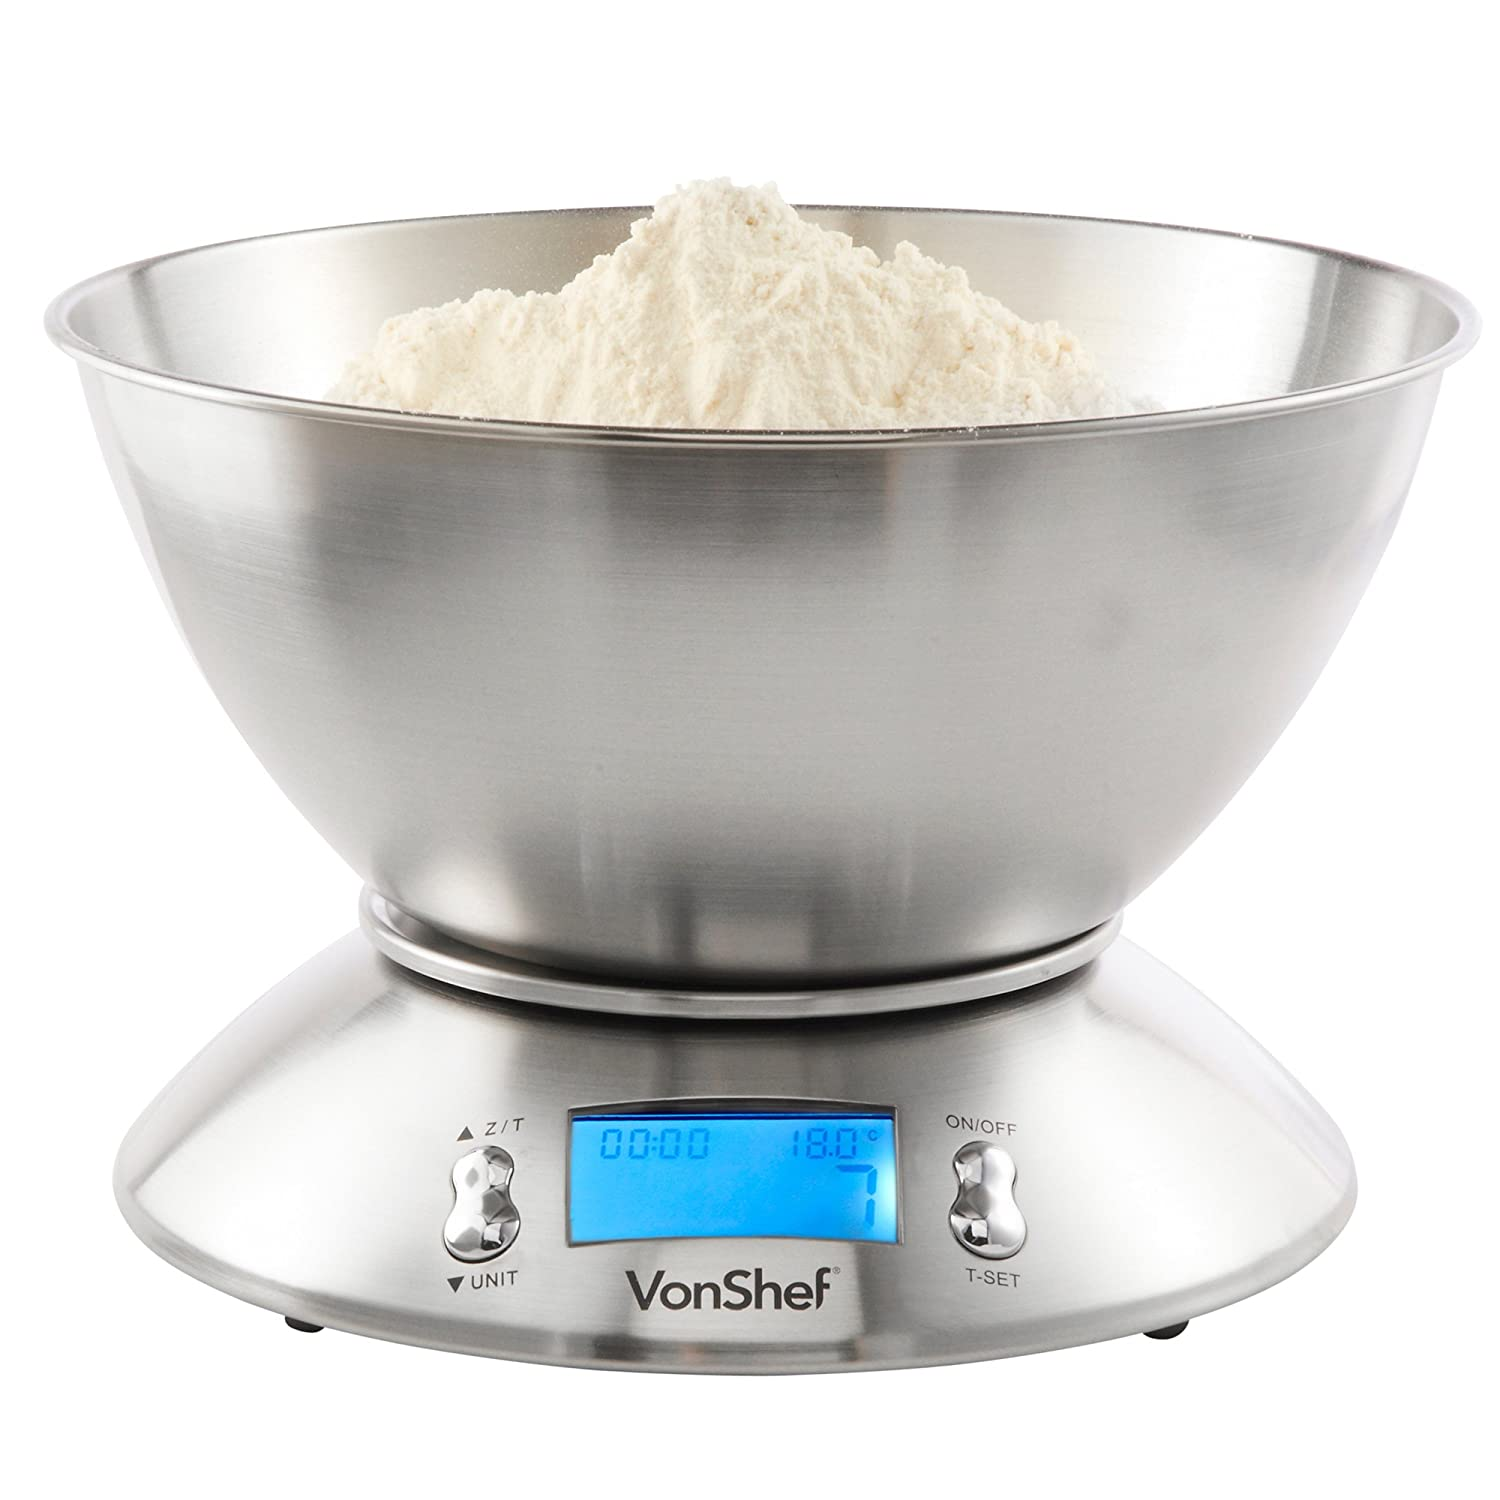 VonShef High Quality 5kg/11lb Digital Electronic Kitchen Scales With  Stainless Steel Mixing Bowl: Amazon.co.uk: Kitchen U0026 Home